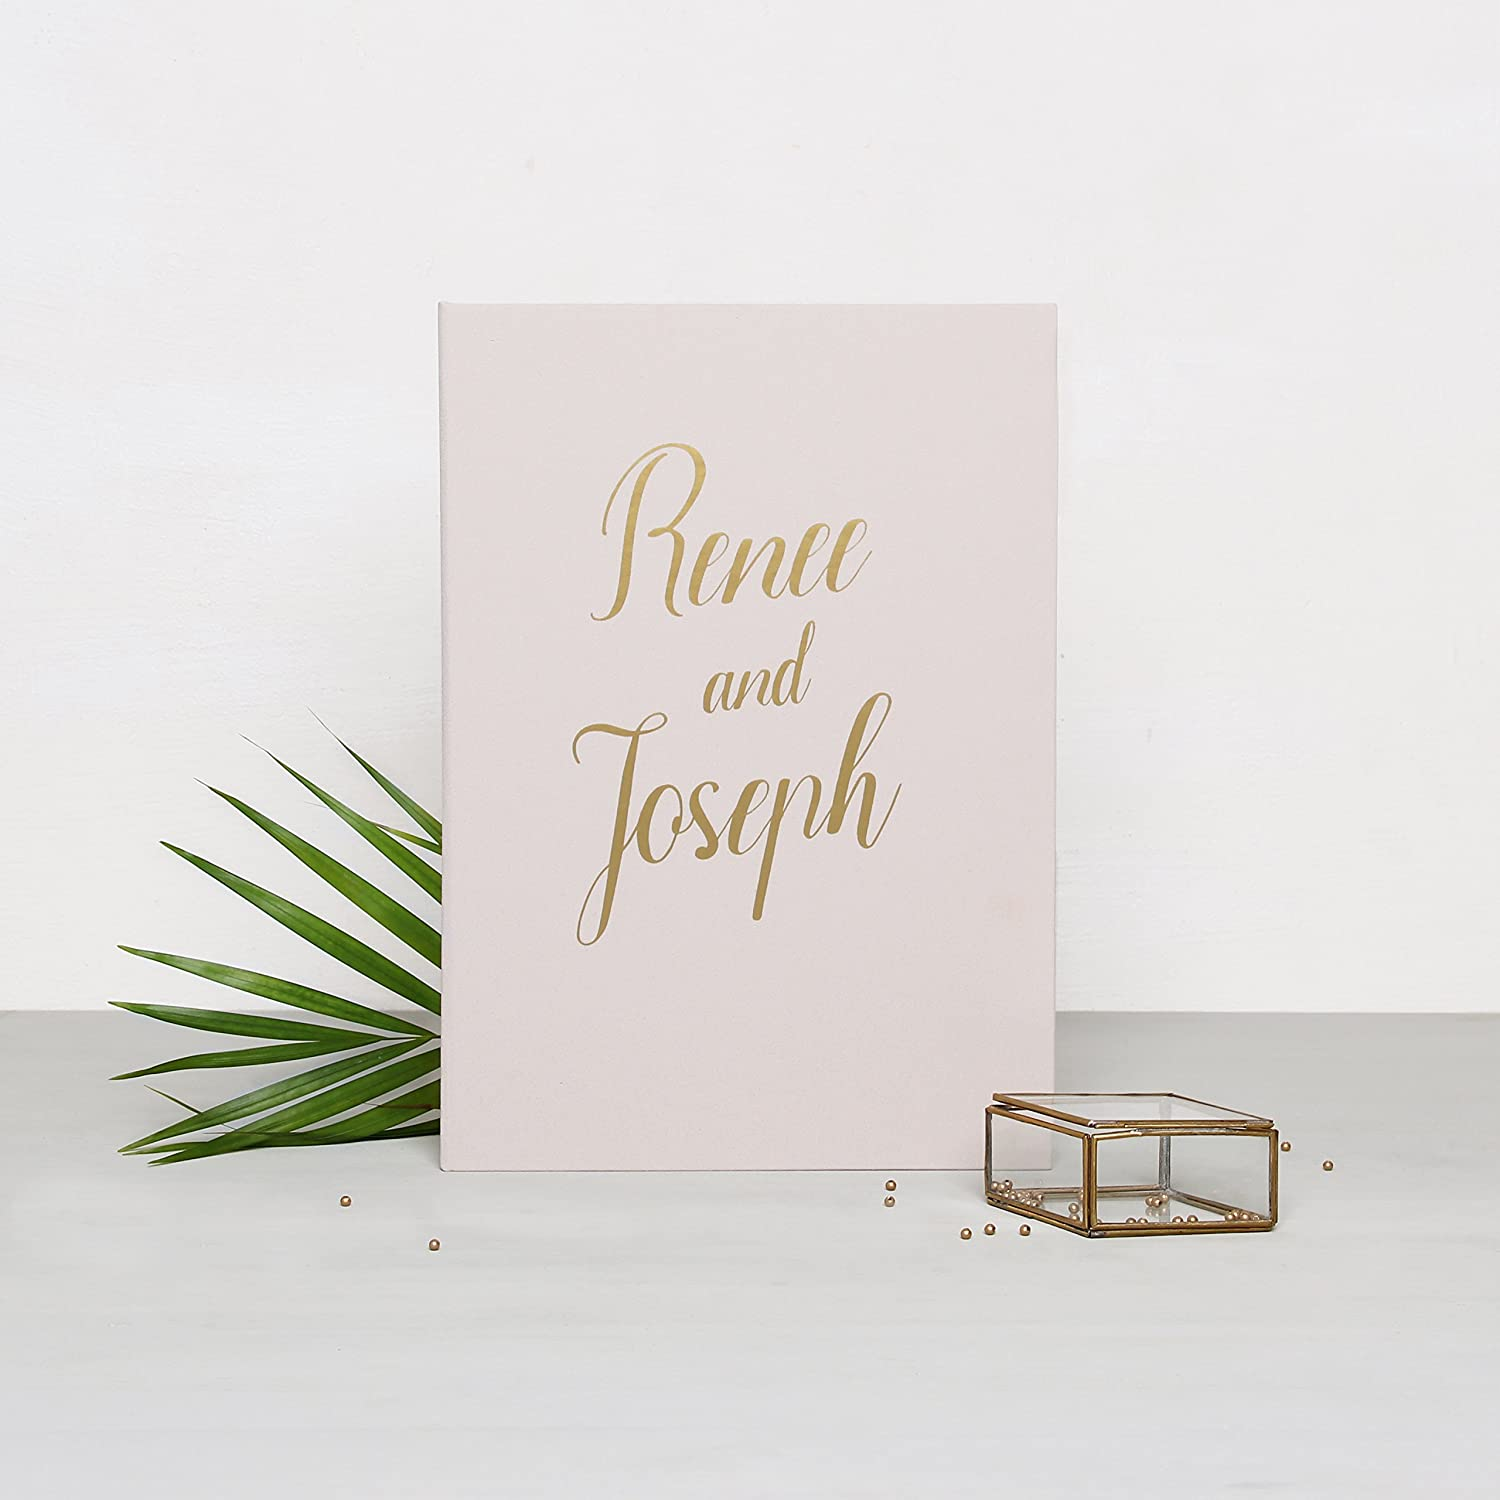 Wedding Album Guest Book Cream With Gold Lettering, Instax picture album by Liumy